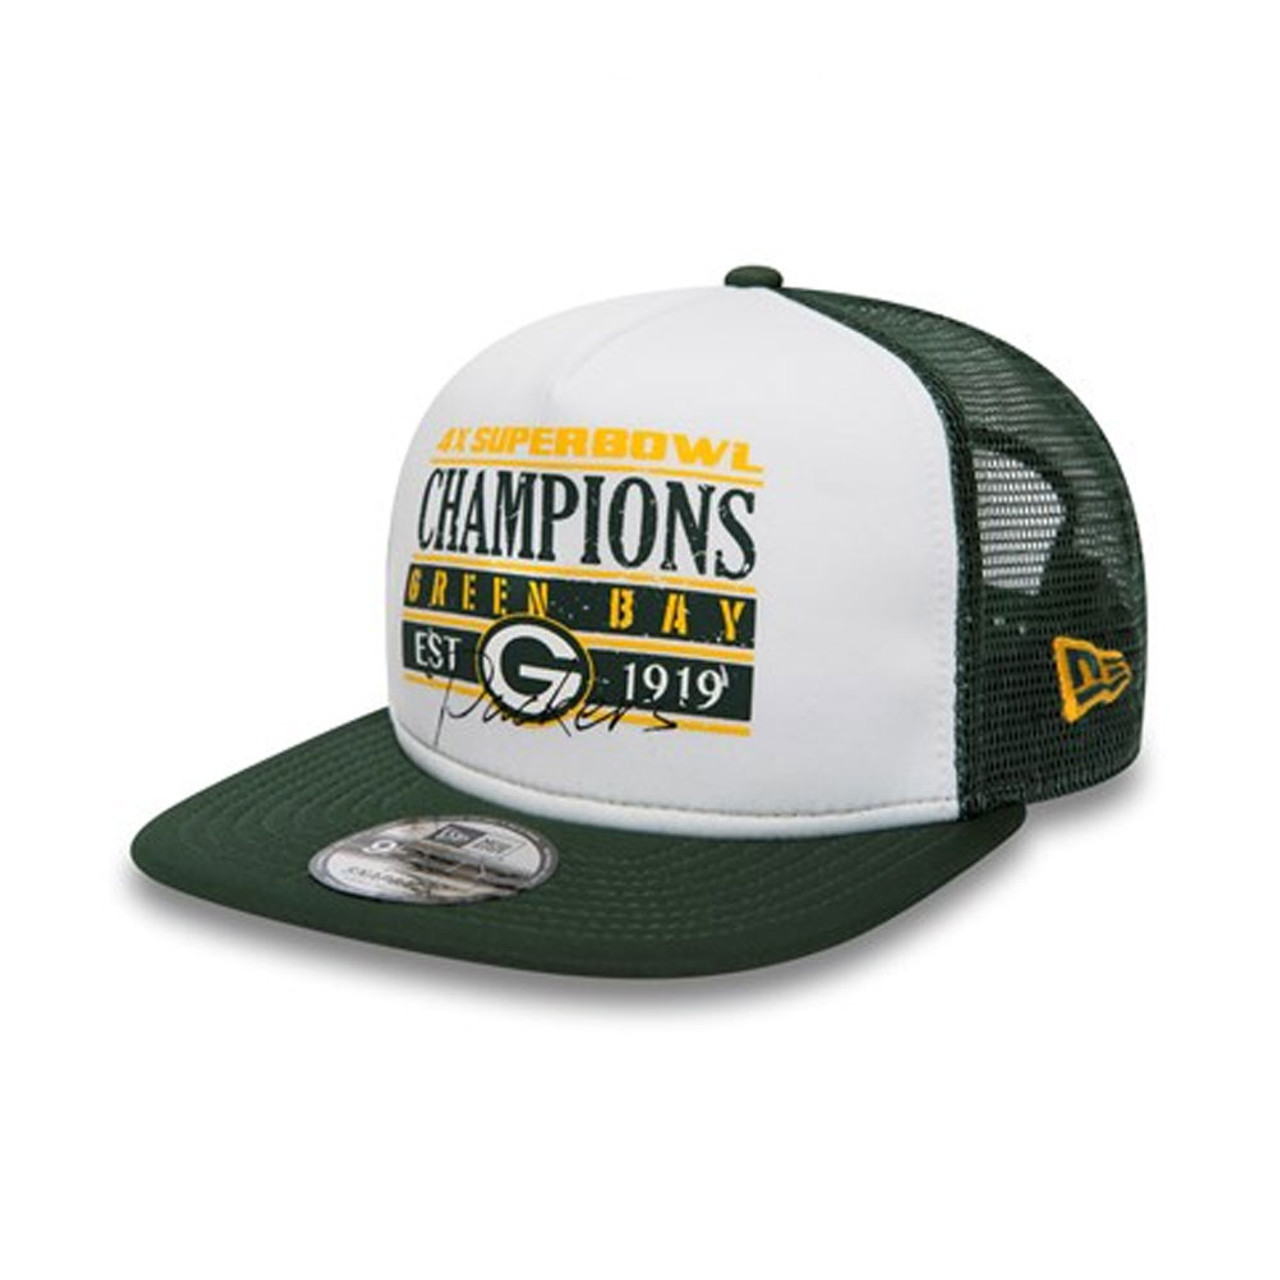 863e9fd0dbfc7 NEW ERA Boston Celtics Trucker cap  black white green  NEW ERA Green Bay  Packers Trucker cap medium large  white green